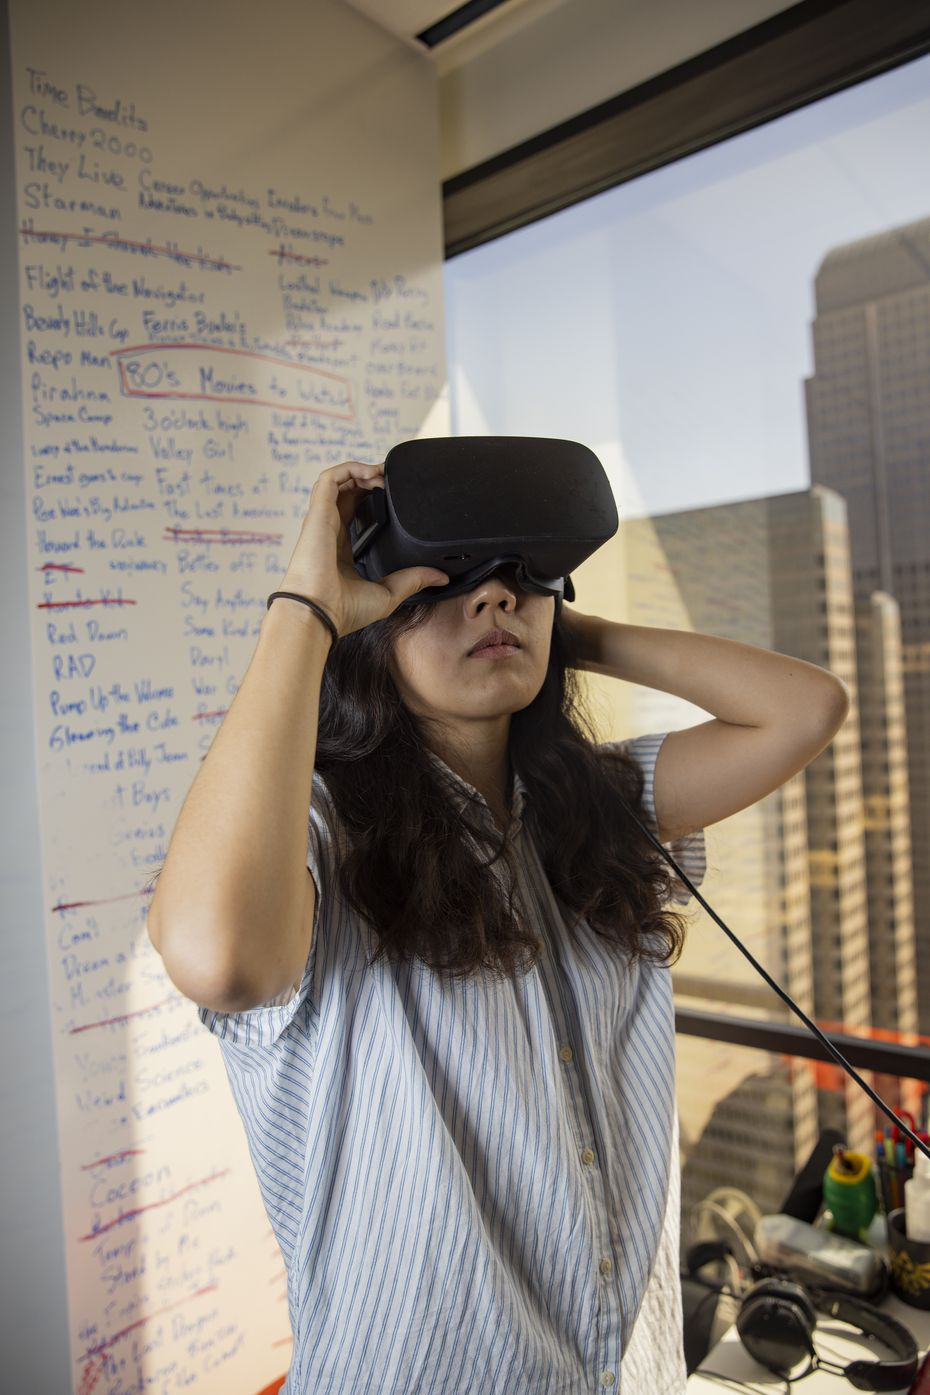 Ruby Wang, concept artist at Flight School Studio, wears a VR headset during a portrait session on July 9, 2020 in Dallas.